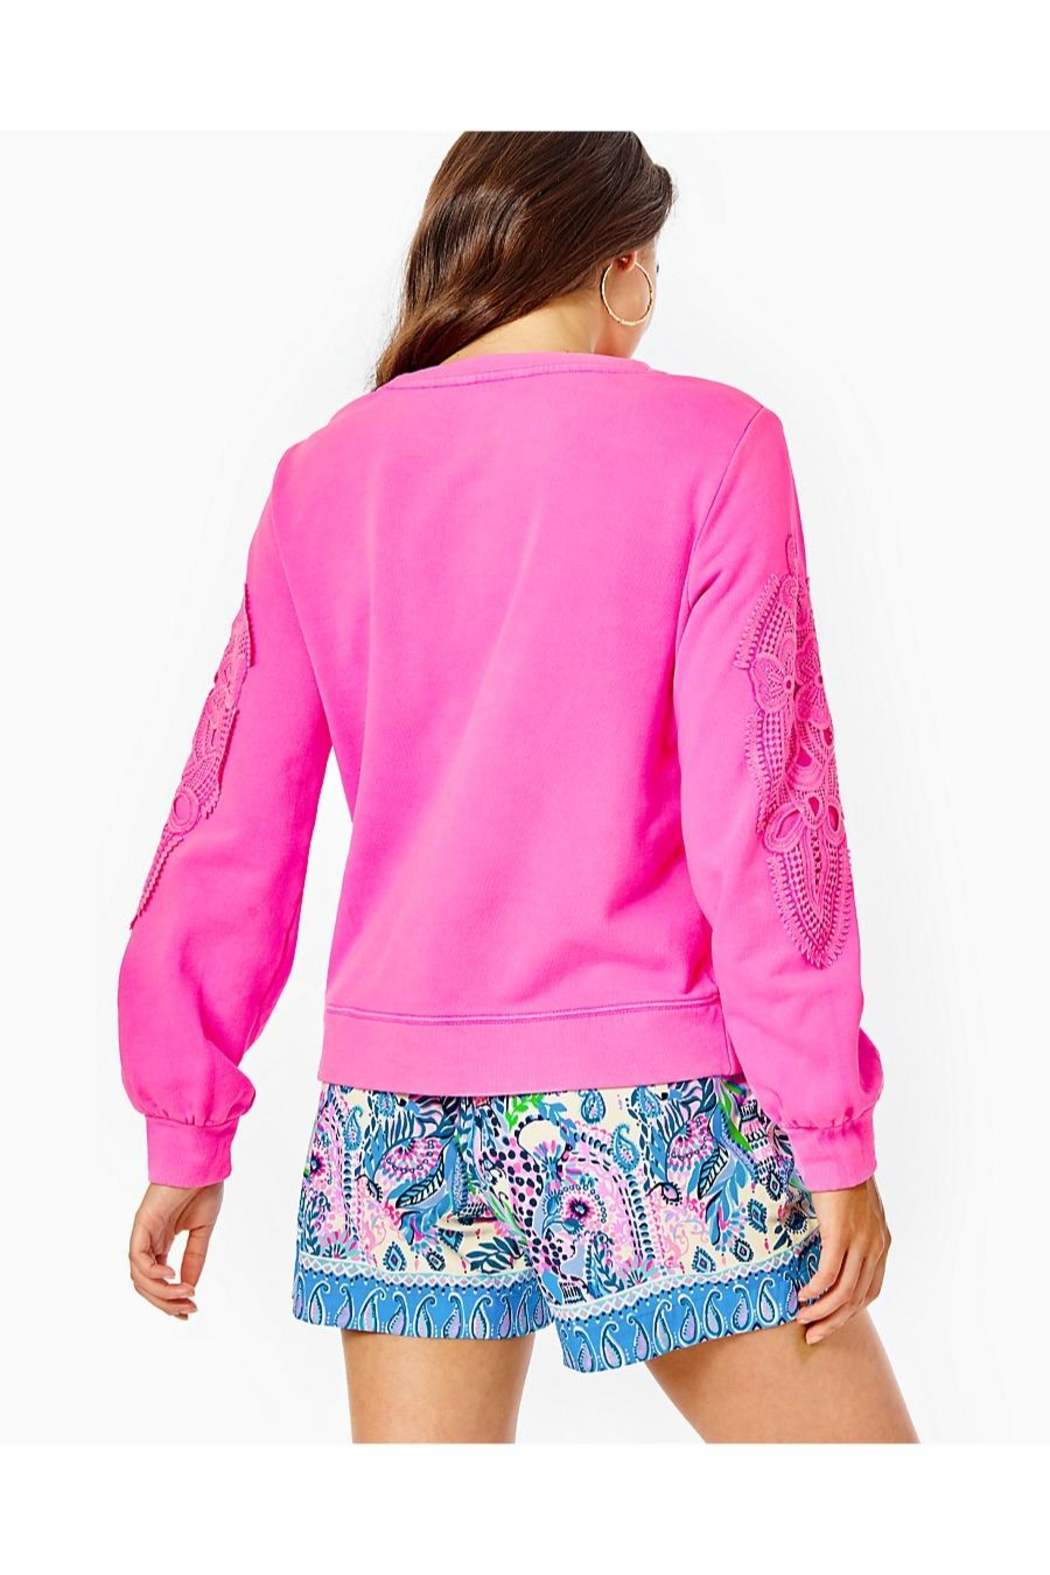 Lilly Pulitzer Rooney Sweatshirt - Front Full Image